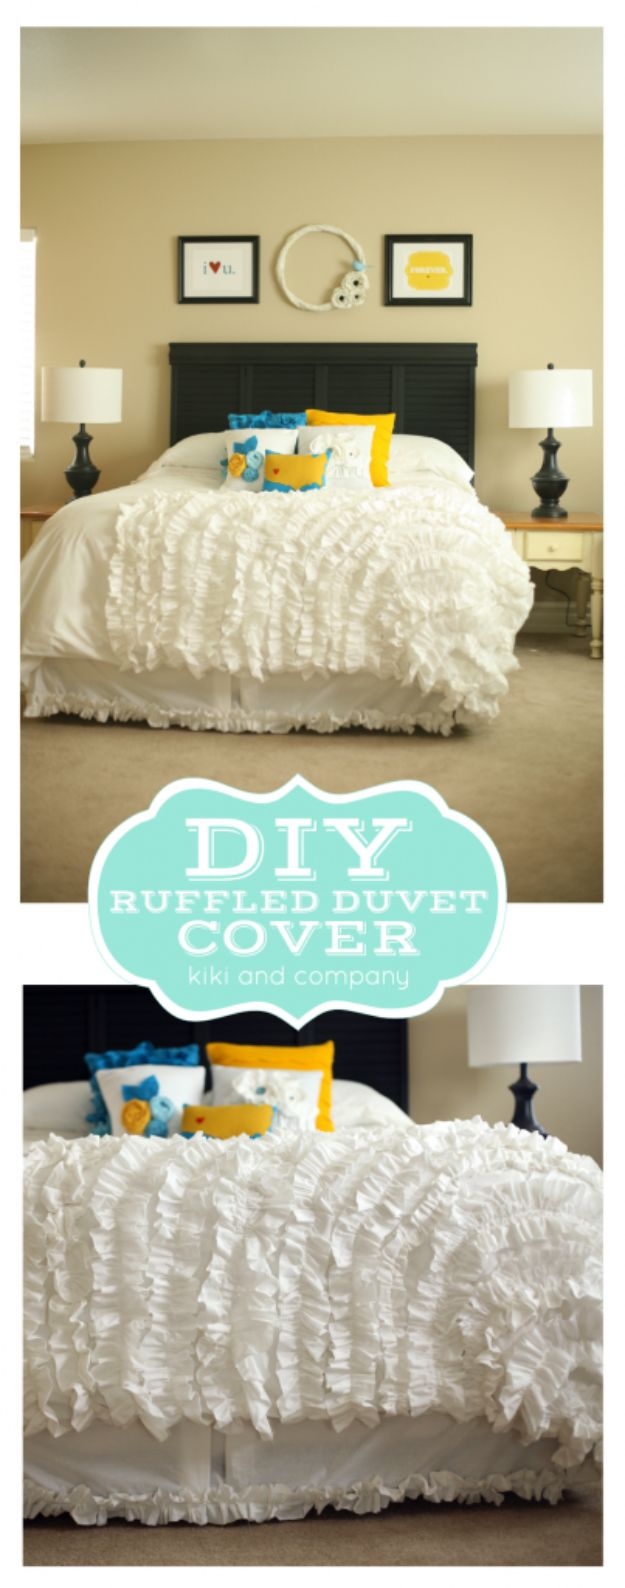 DIY Duvet Covers - DIY Ruffled Duvet Cover - Easy Sewing Projects and No Sew Ideas for Duvets - Cheap Bedroom Decor Ideas on A Budget - How To Sew A Duvet Cover and Bedding Tutorial - Creative Covers for Bed - Quick Projects for Making Designer Duvets - Awesome Home Decor Ideas and Crafts http://diyjoy.com/diy-duvet-covers